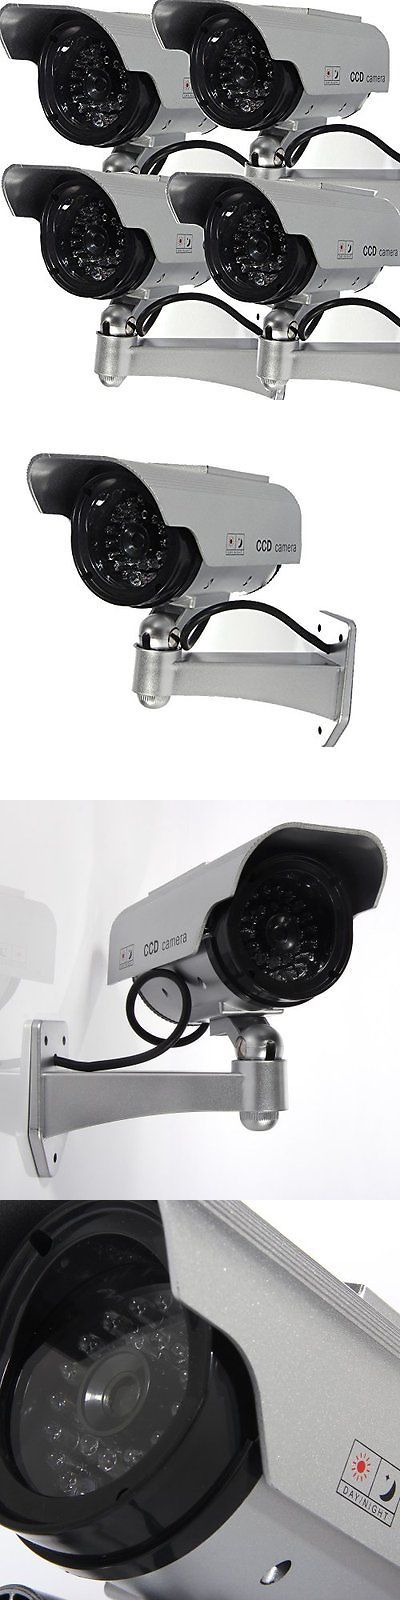 Dummy Cameras: Masione 4 Pack Solar Powered Fake Dummy Security Camera With Blinking Led New -> BUY IT NOW ONLY: $35.39 on eBay!